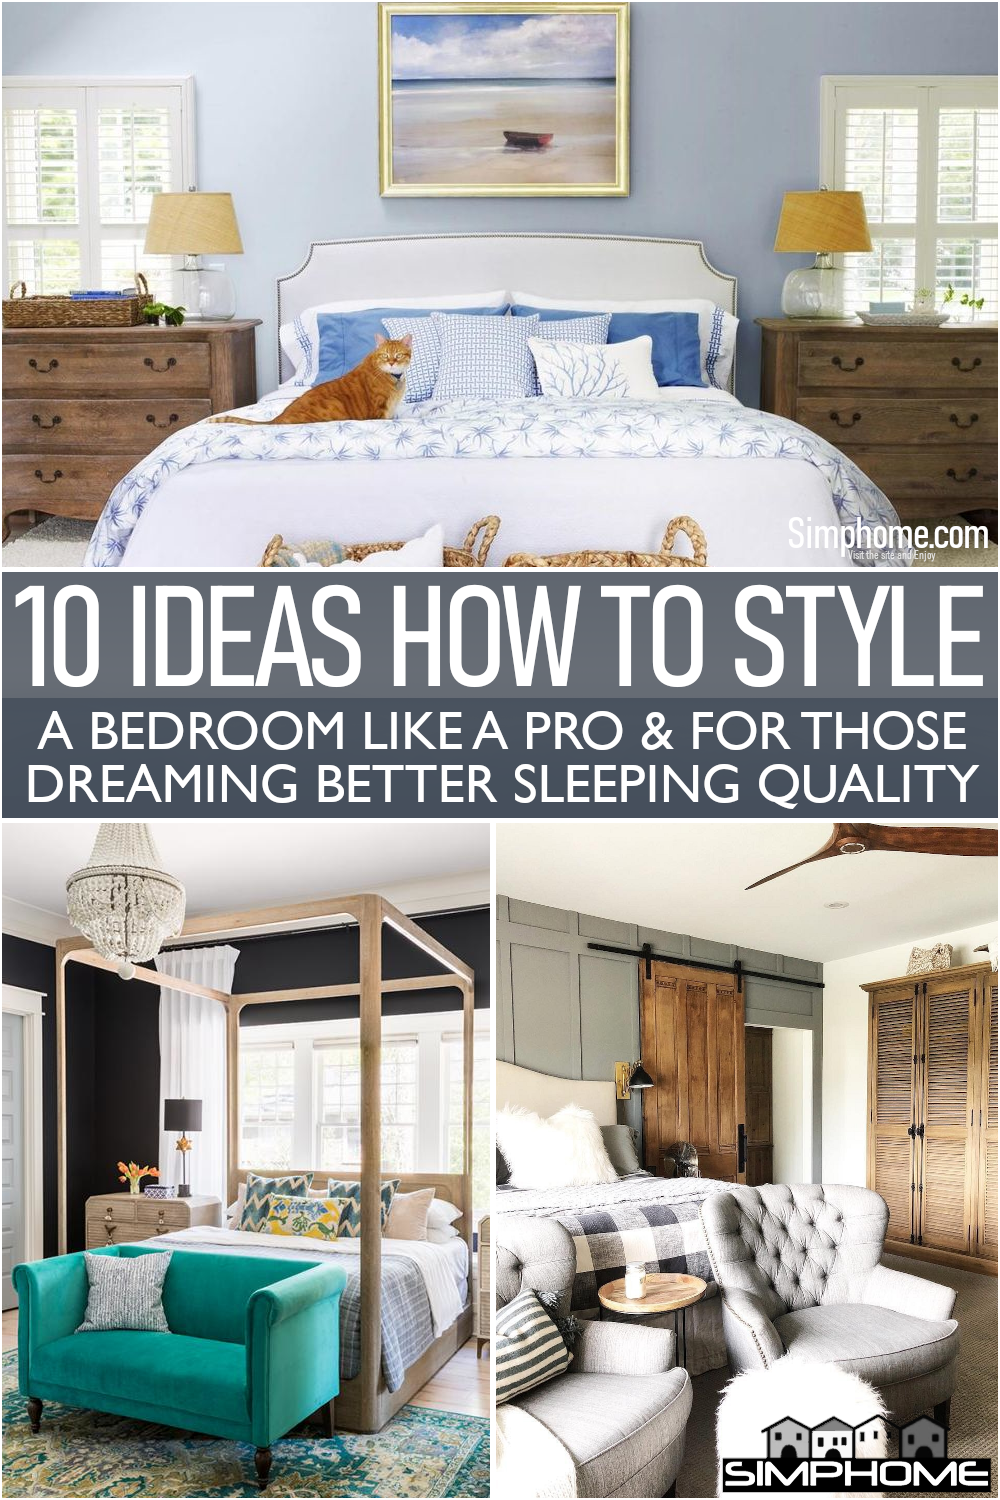 This is awesome and inspiring 10 Ideas to Style A Bedroom Like a Champ